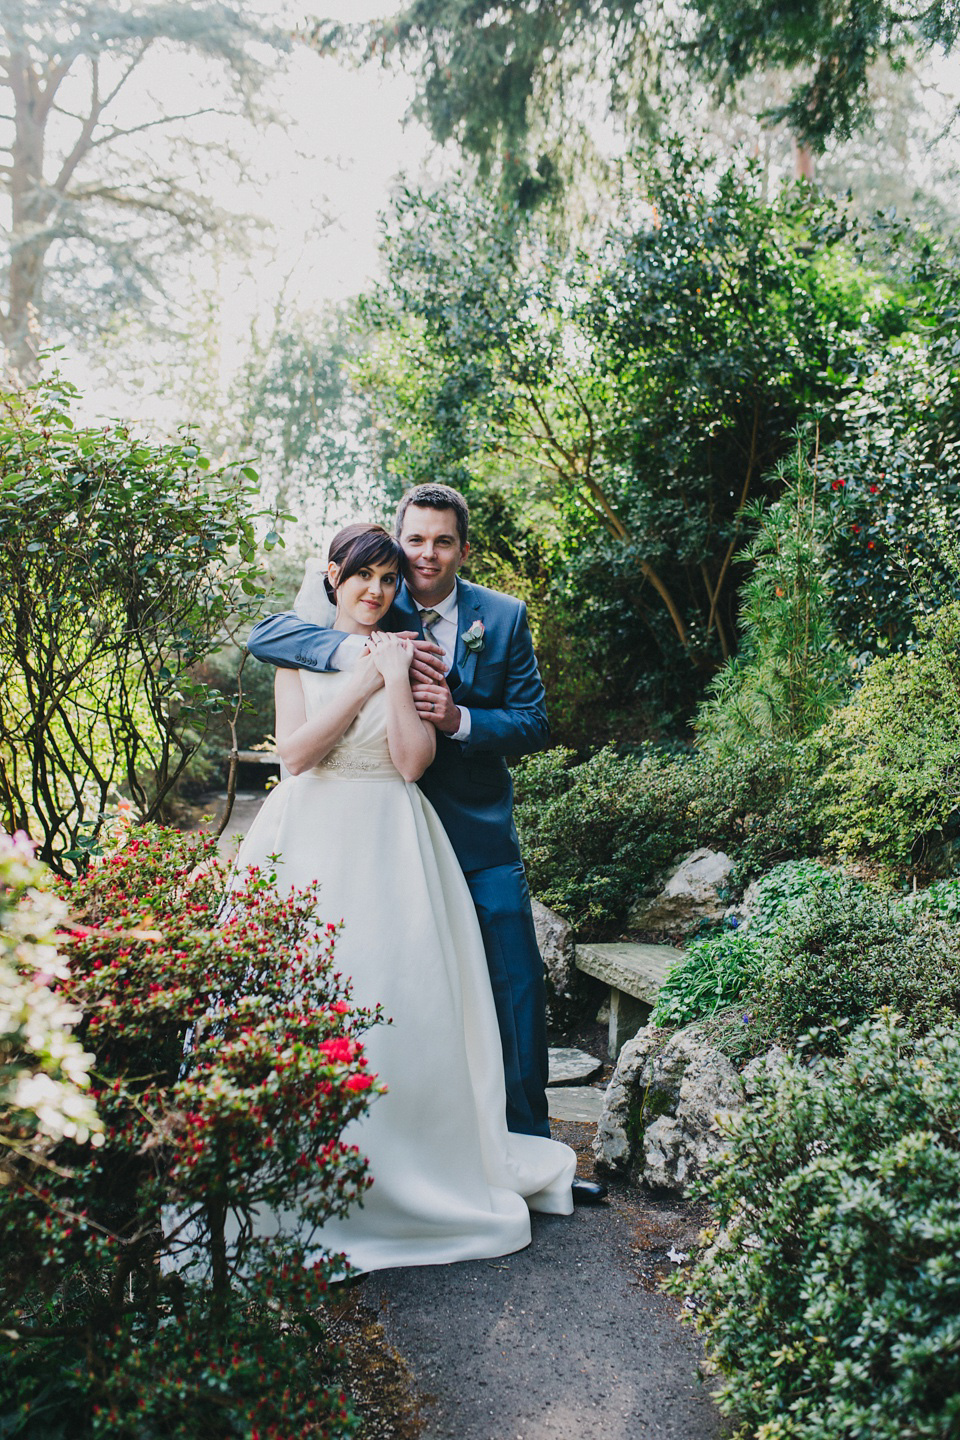 A Pronovias Gown for a Pastel Colour Japanese Garden Wedding